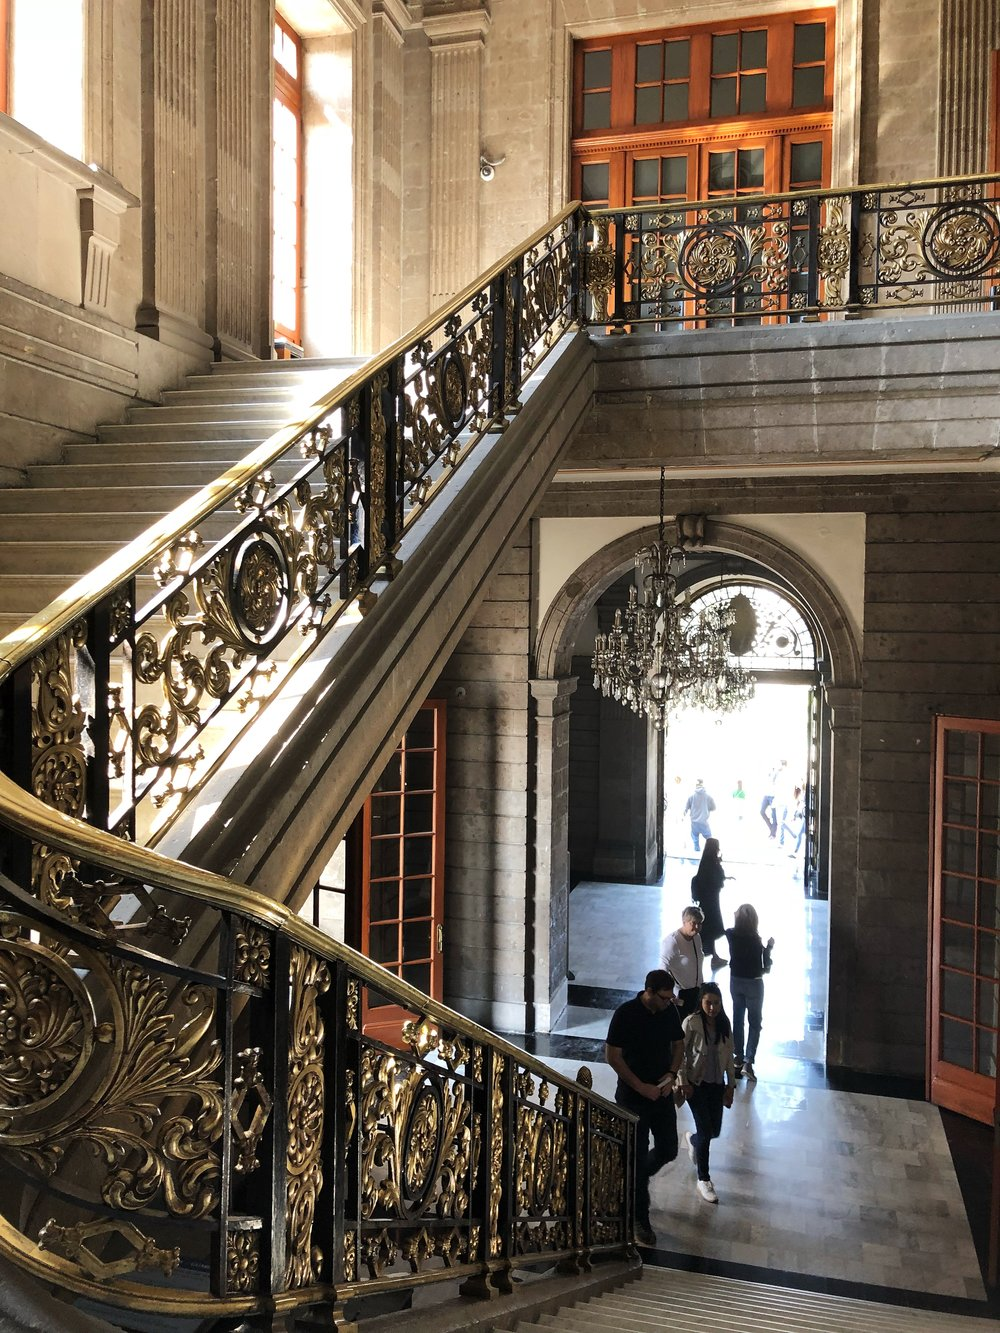 Inside the  Castillo de Chapultepec